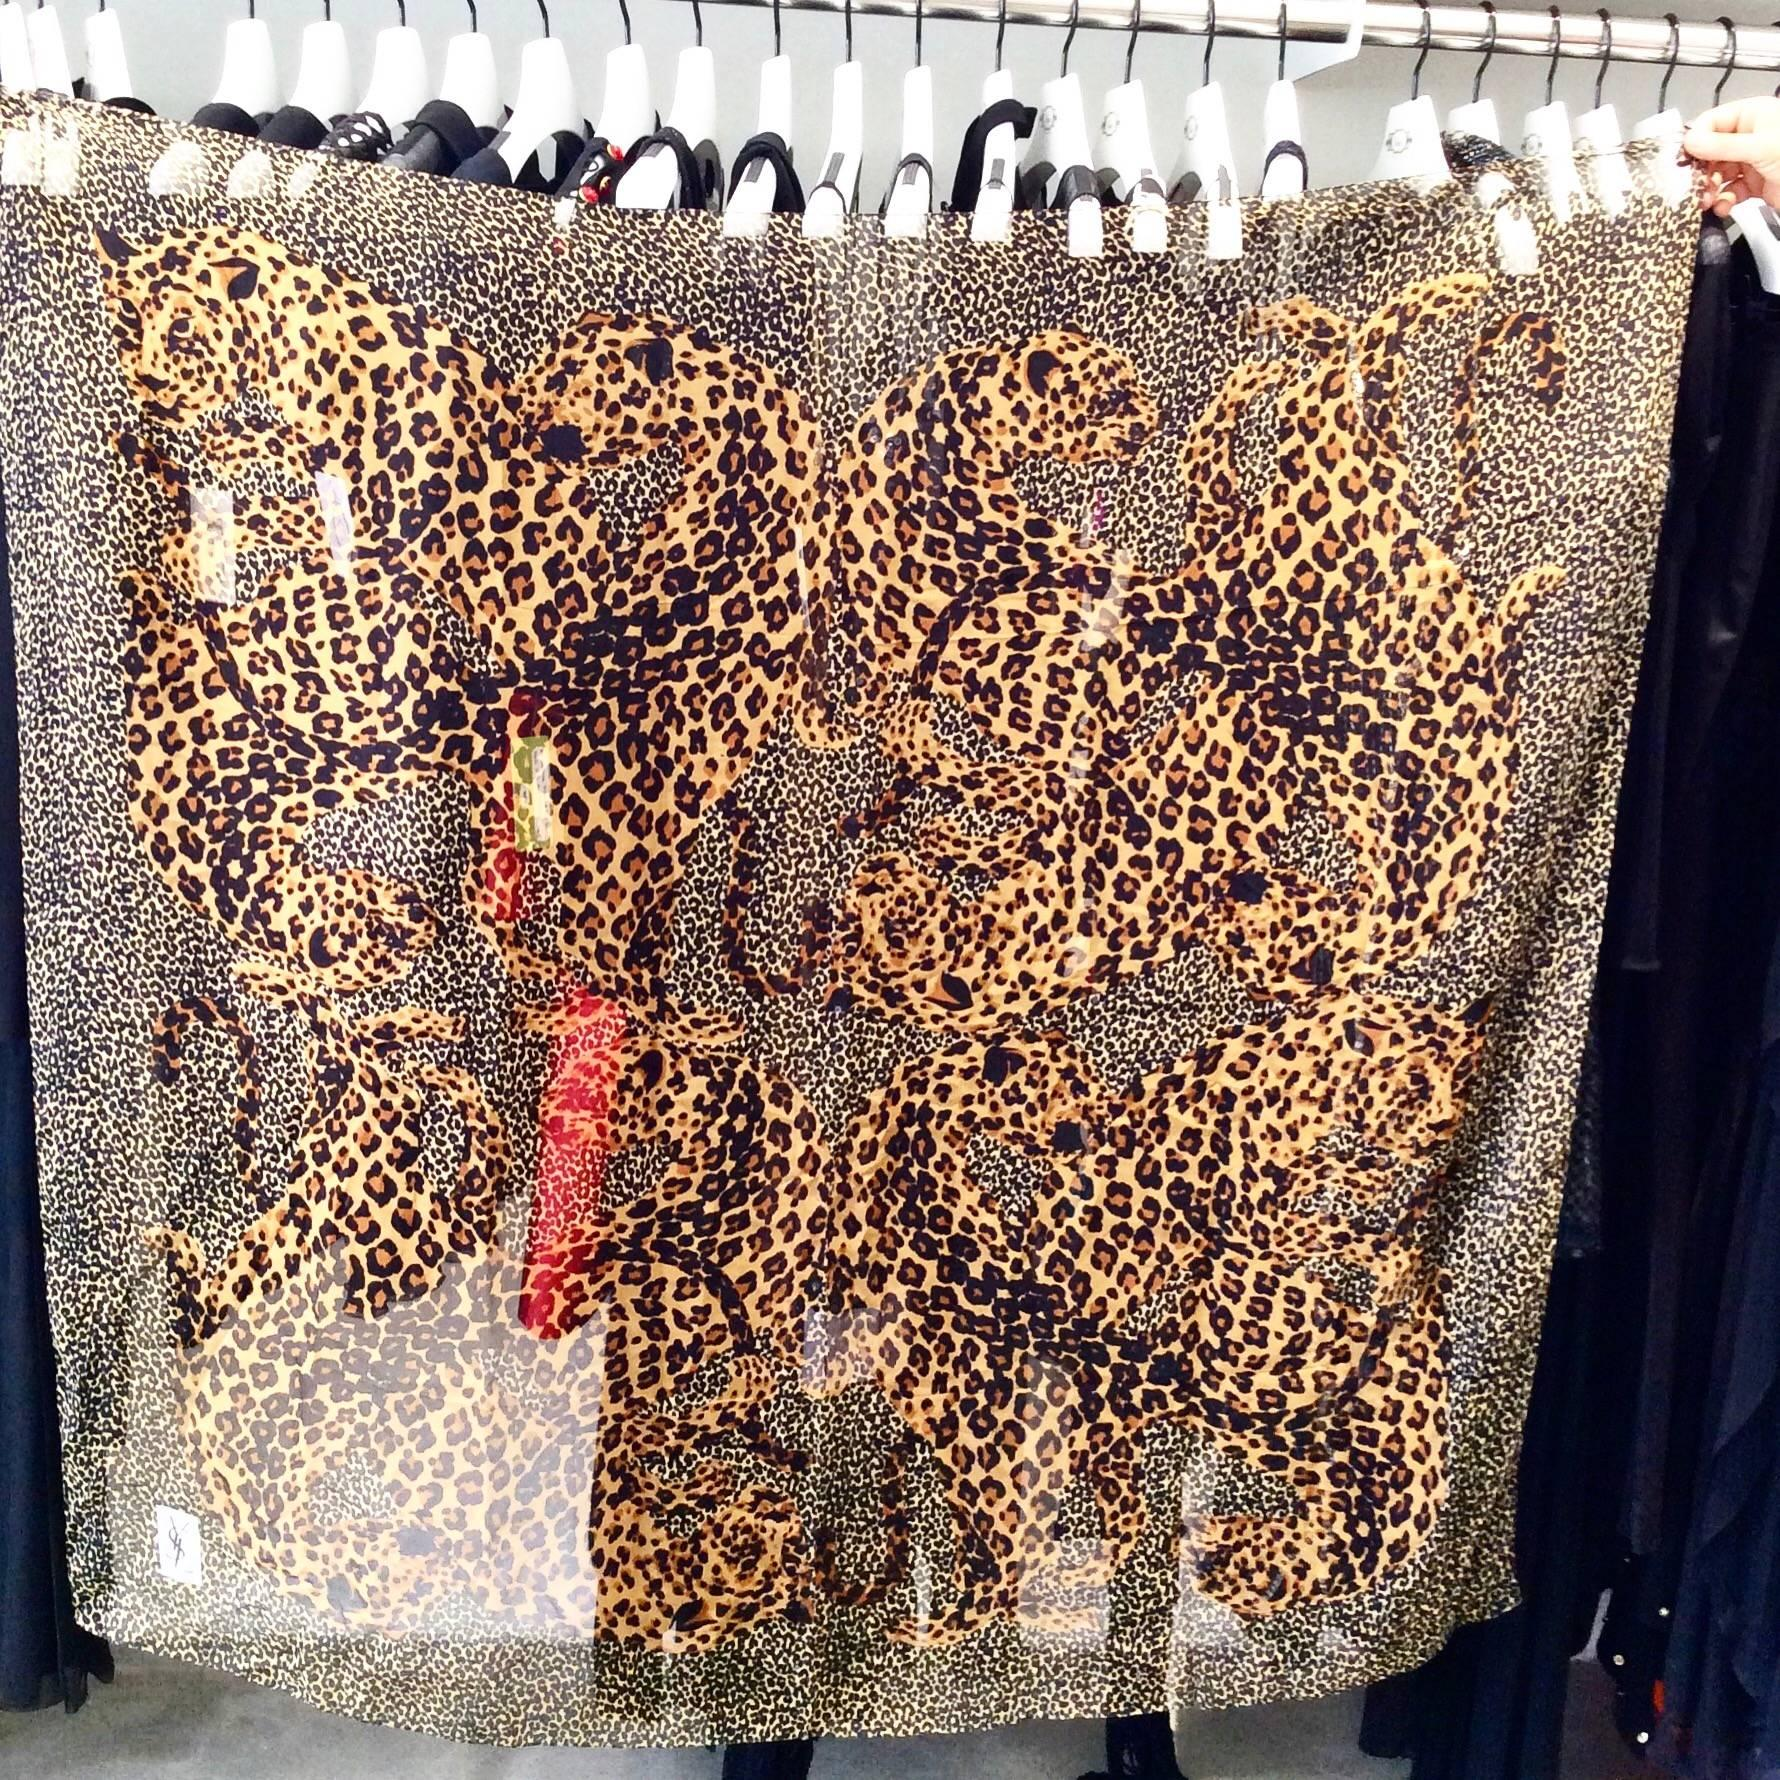 dd358bc6469dc 1980s Yves Saint Laurent Leopard Print Large Silk Scarf at 1stdibs